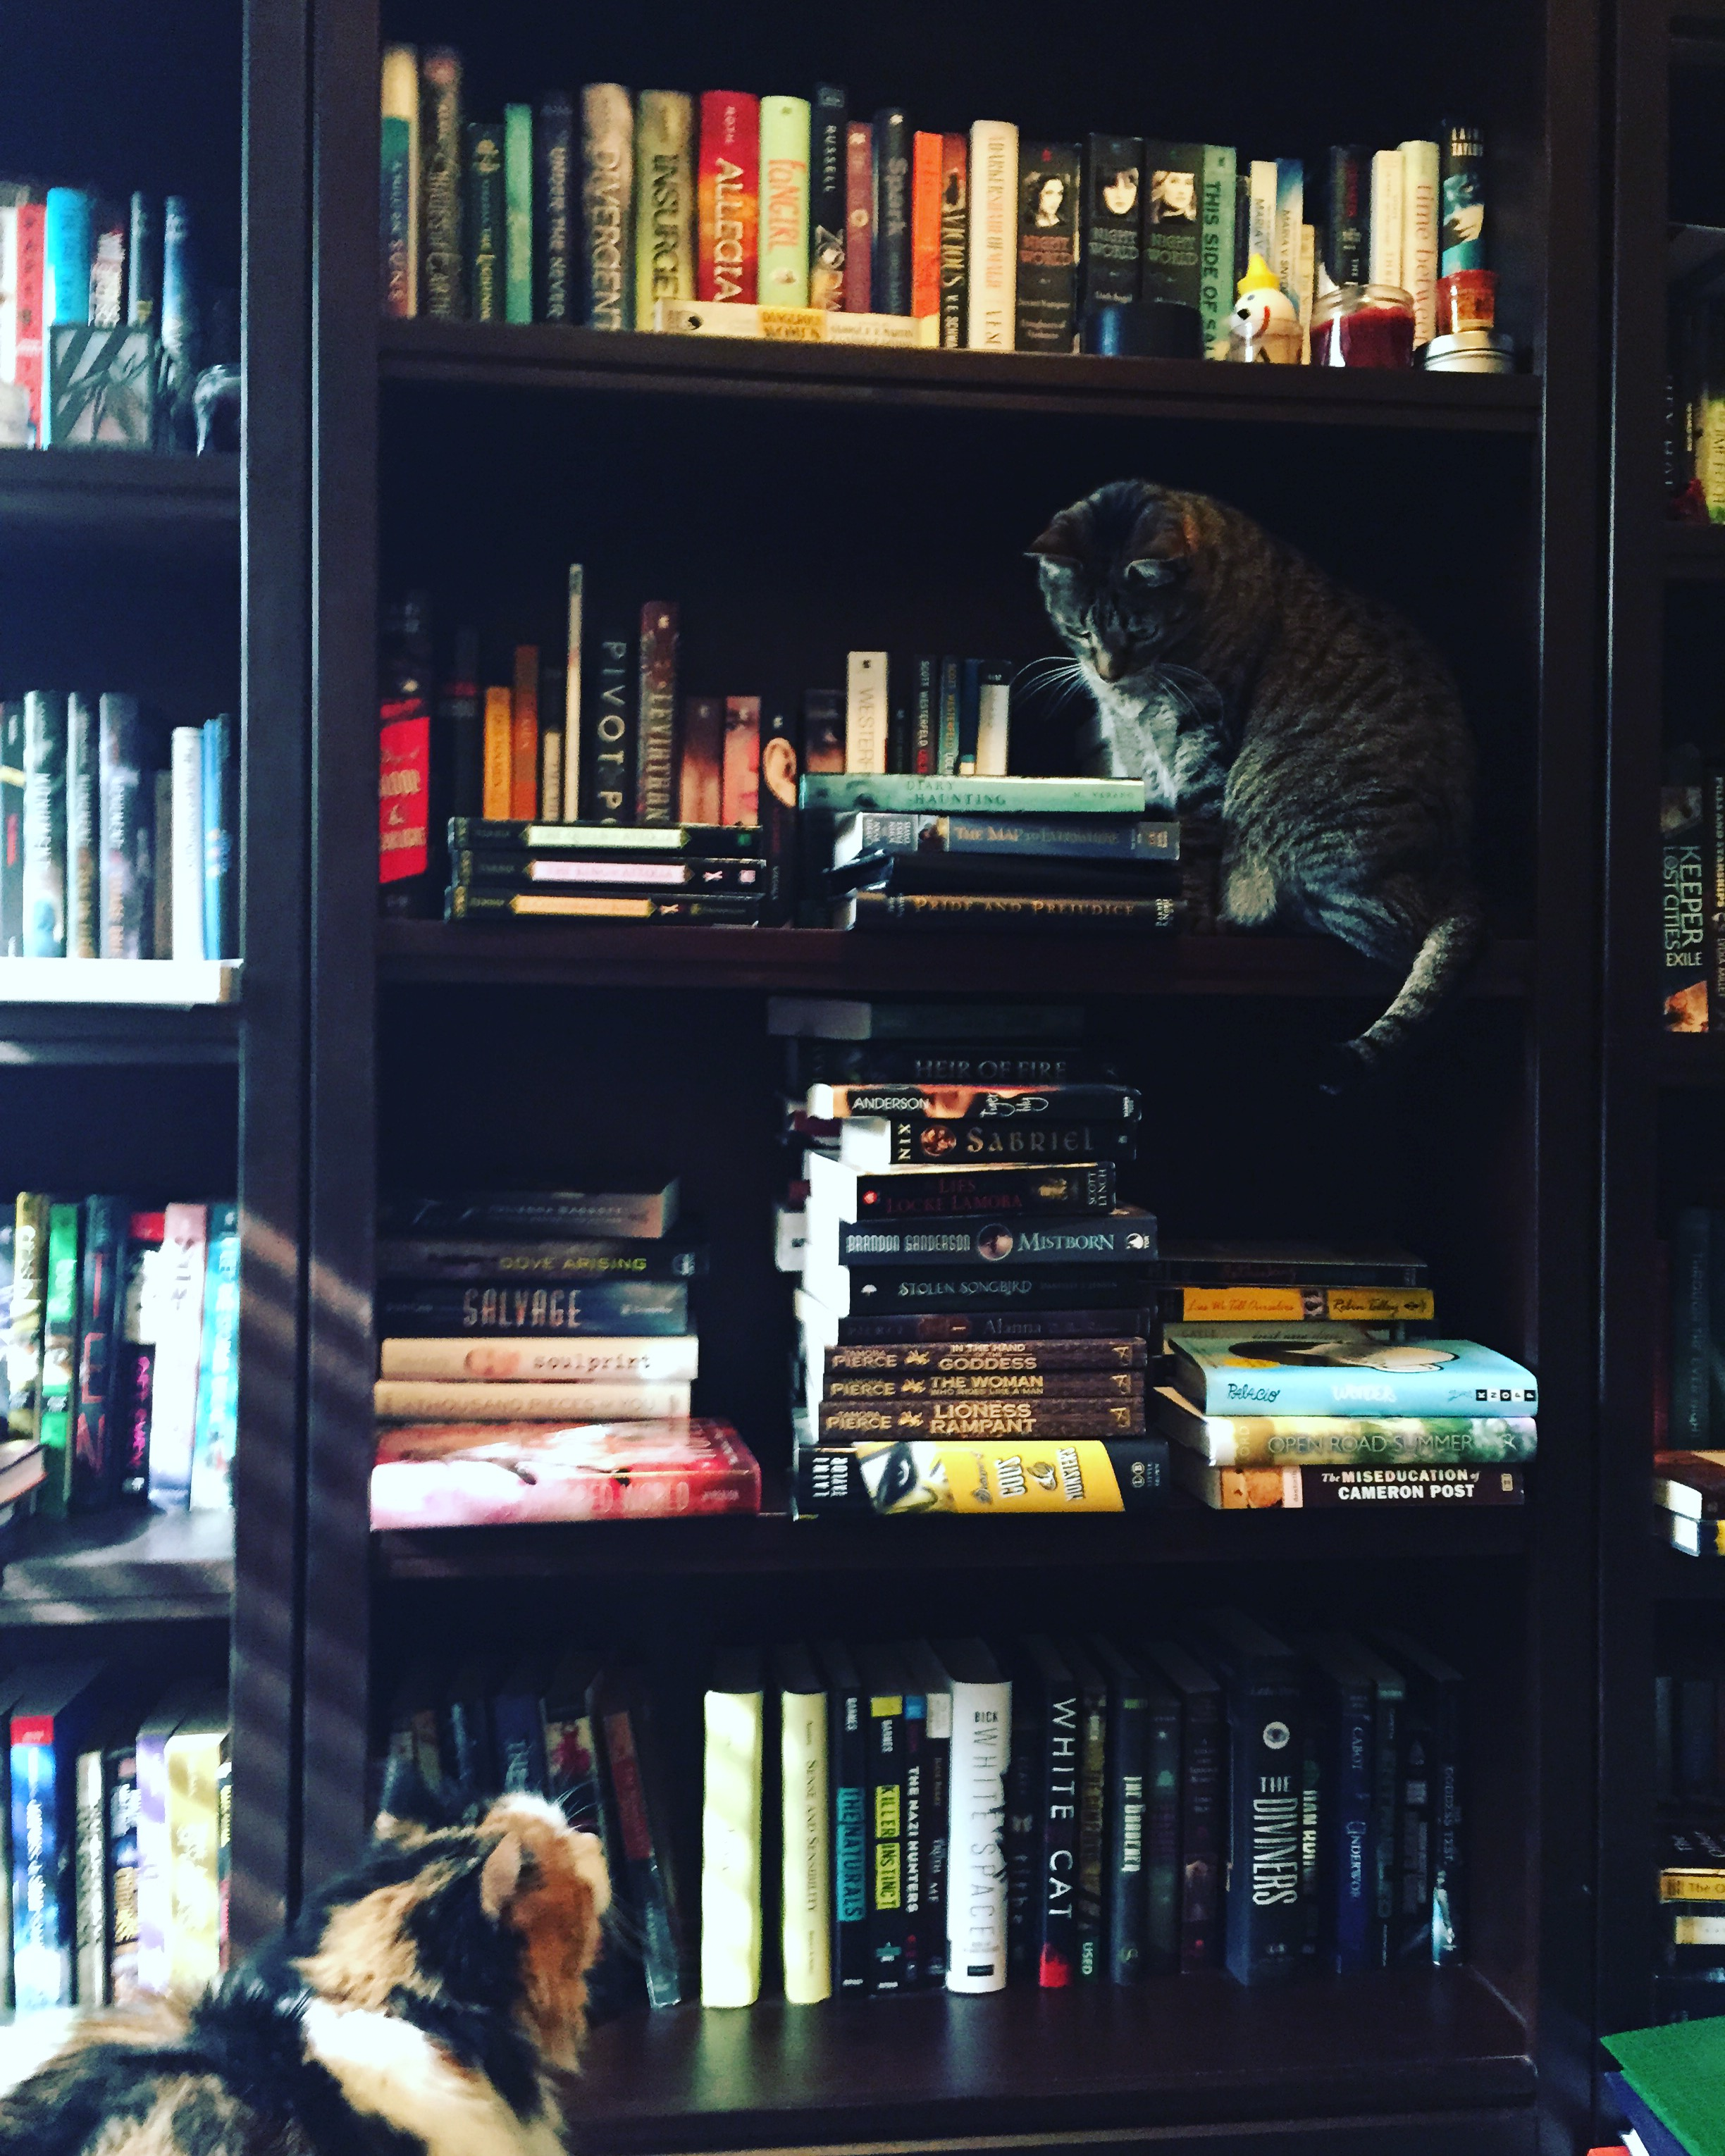 Cats on Bookshelves